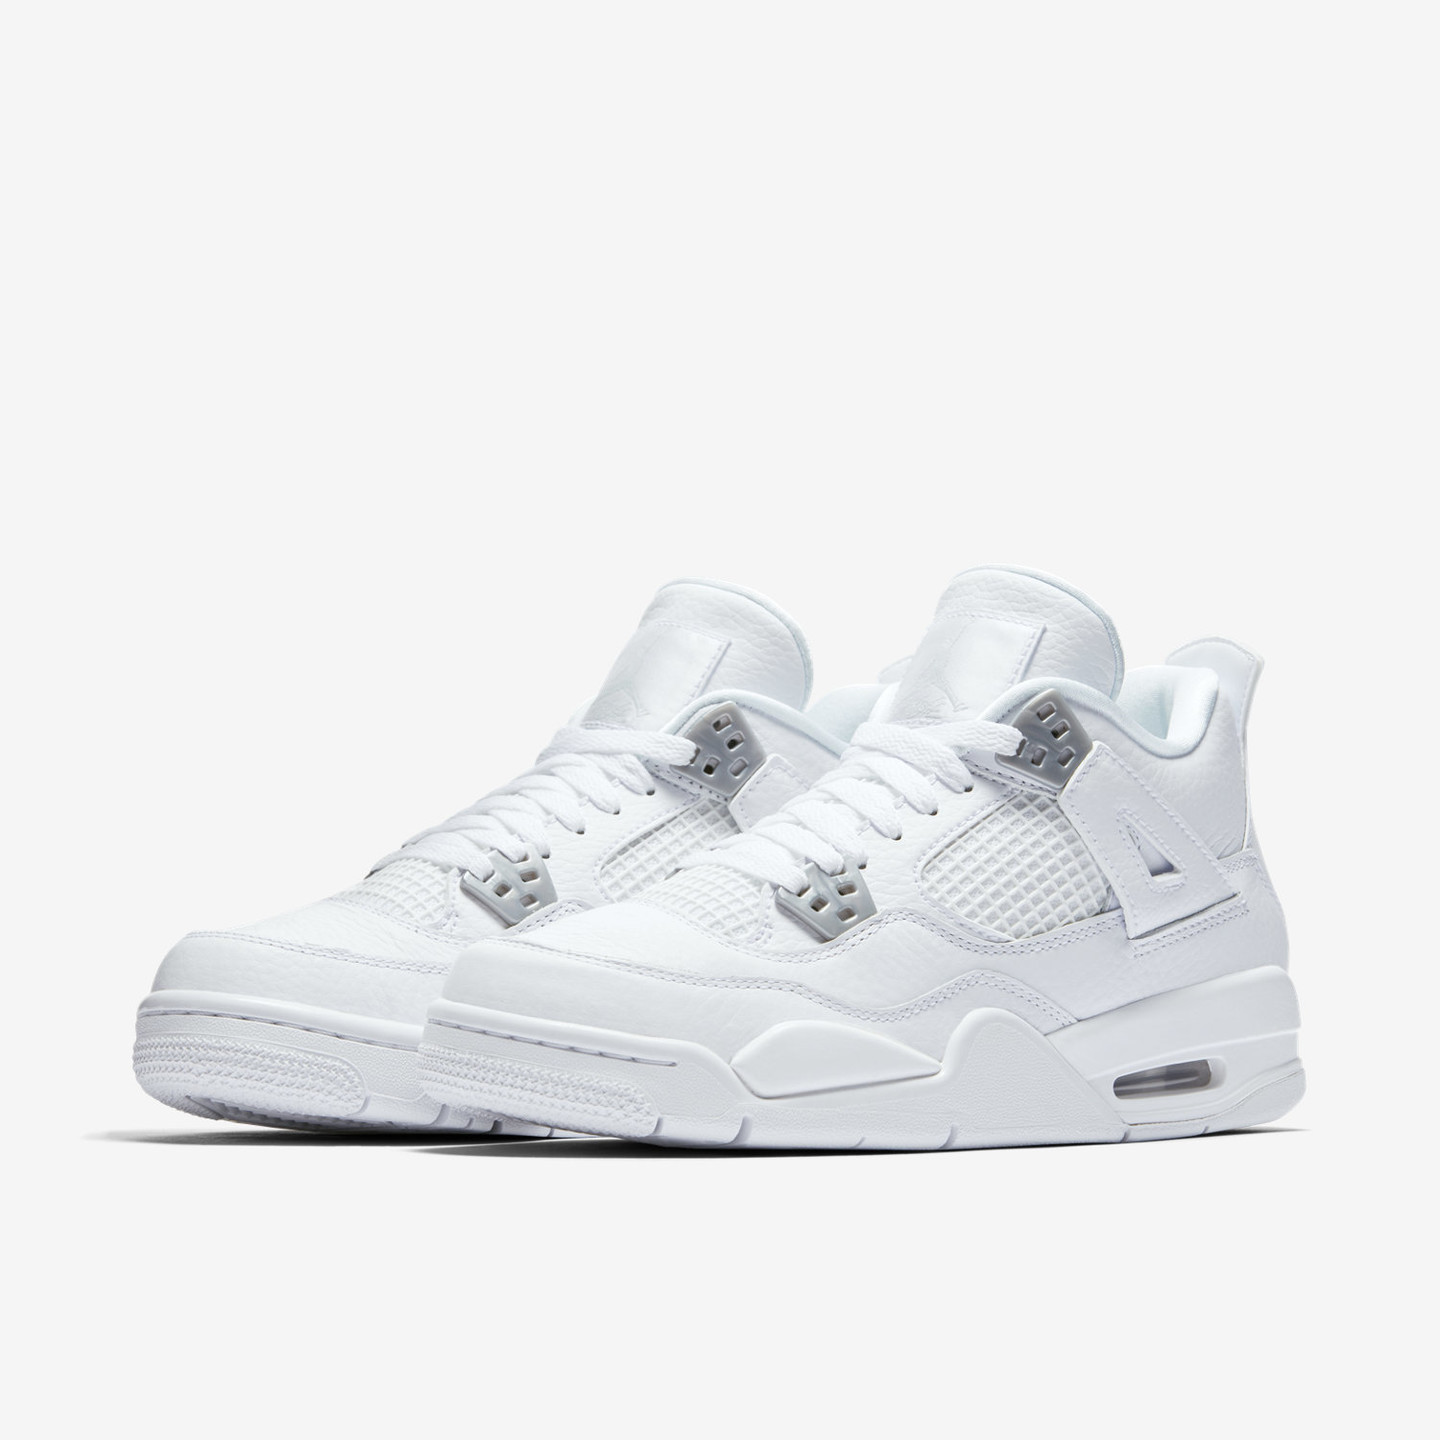 Jordan Air Jordan 4 Retro GS 'Pure Money' White / Silver / Pure Platinum 408452-100-39